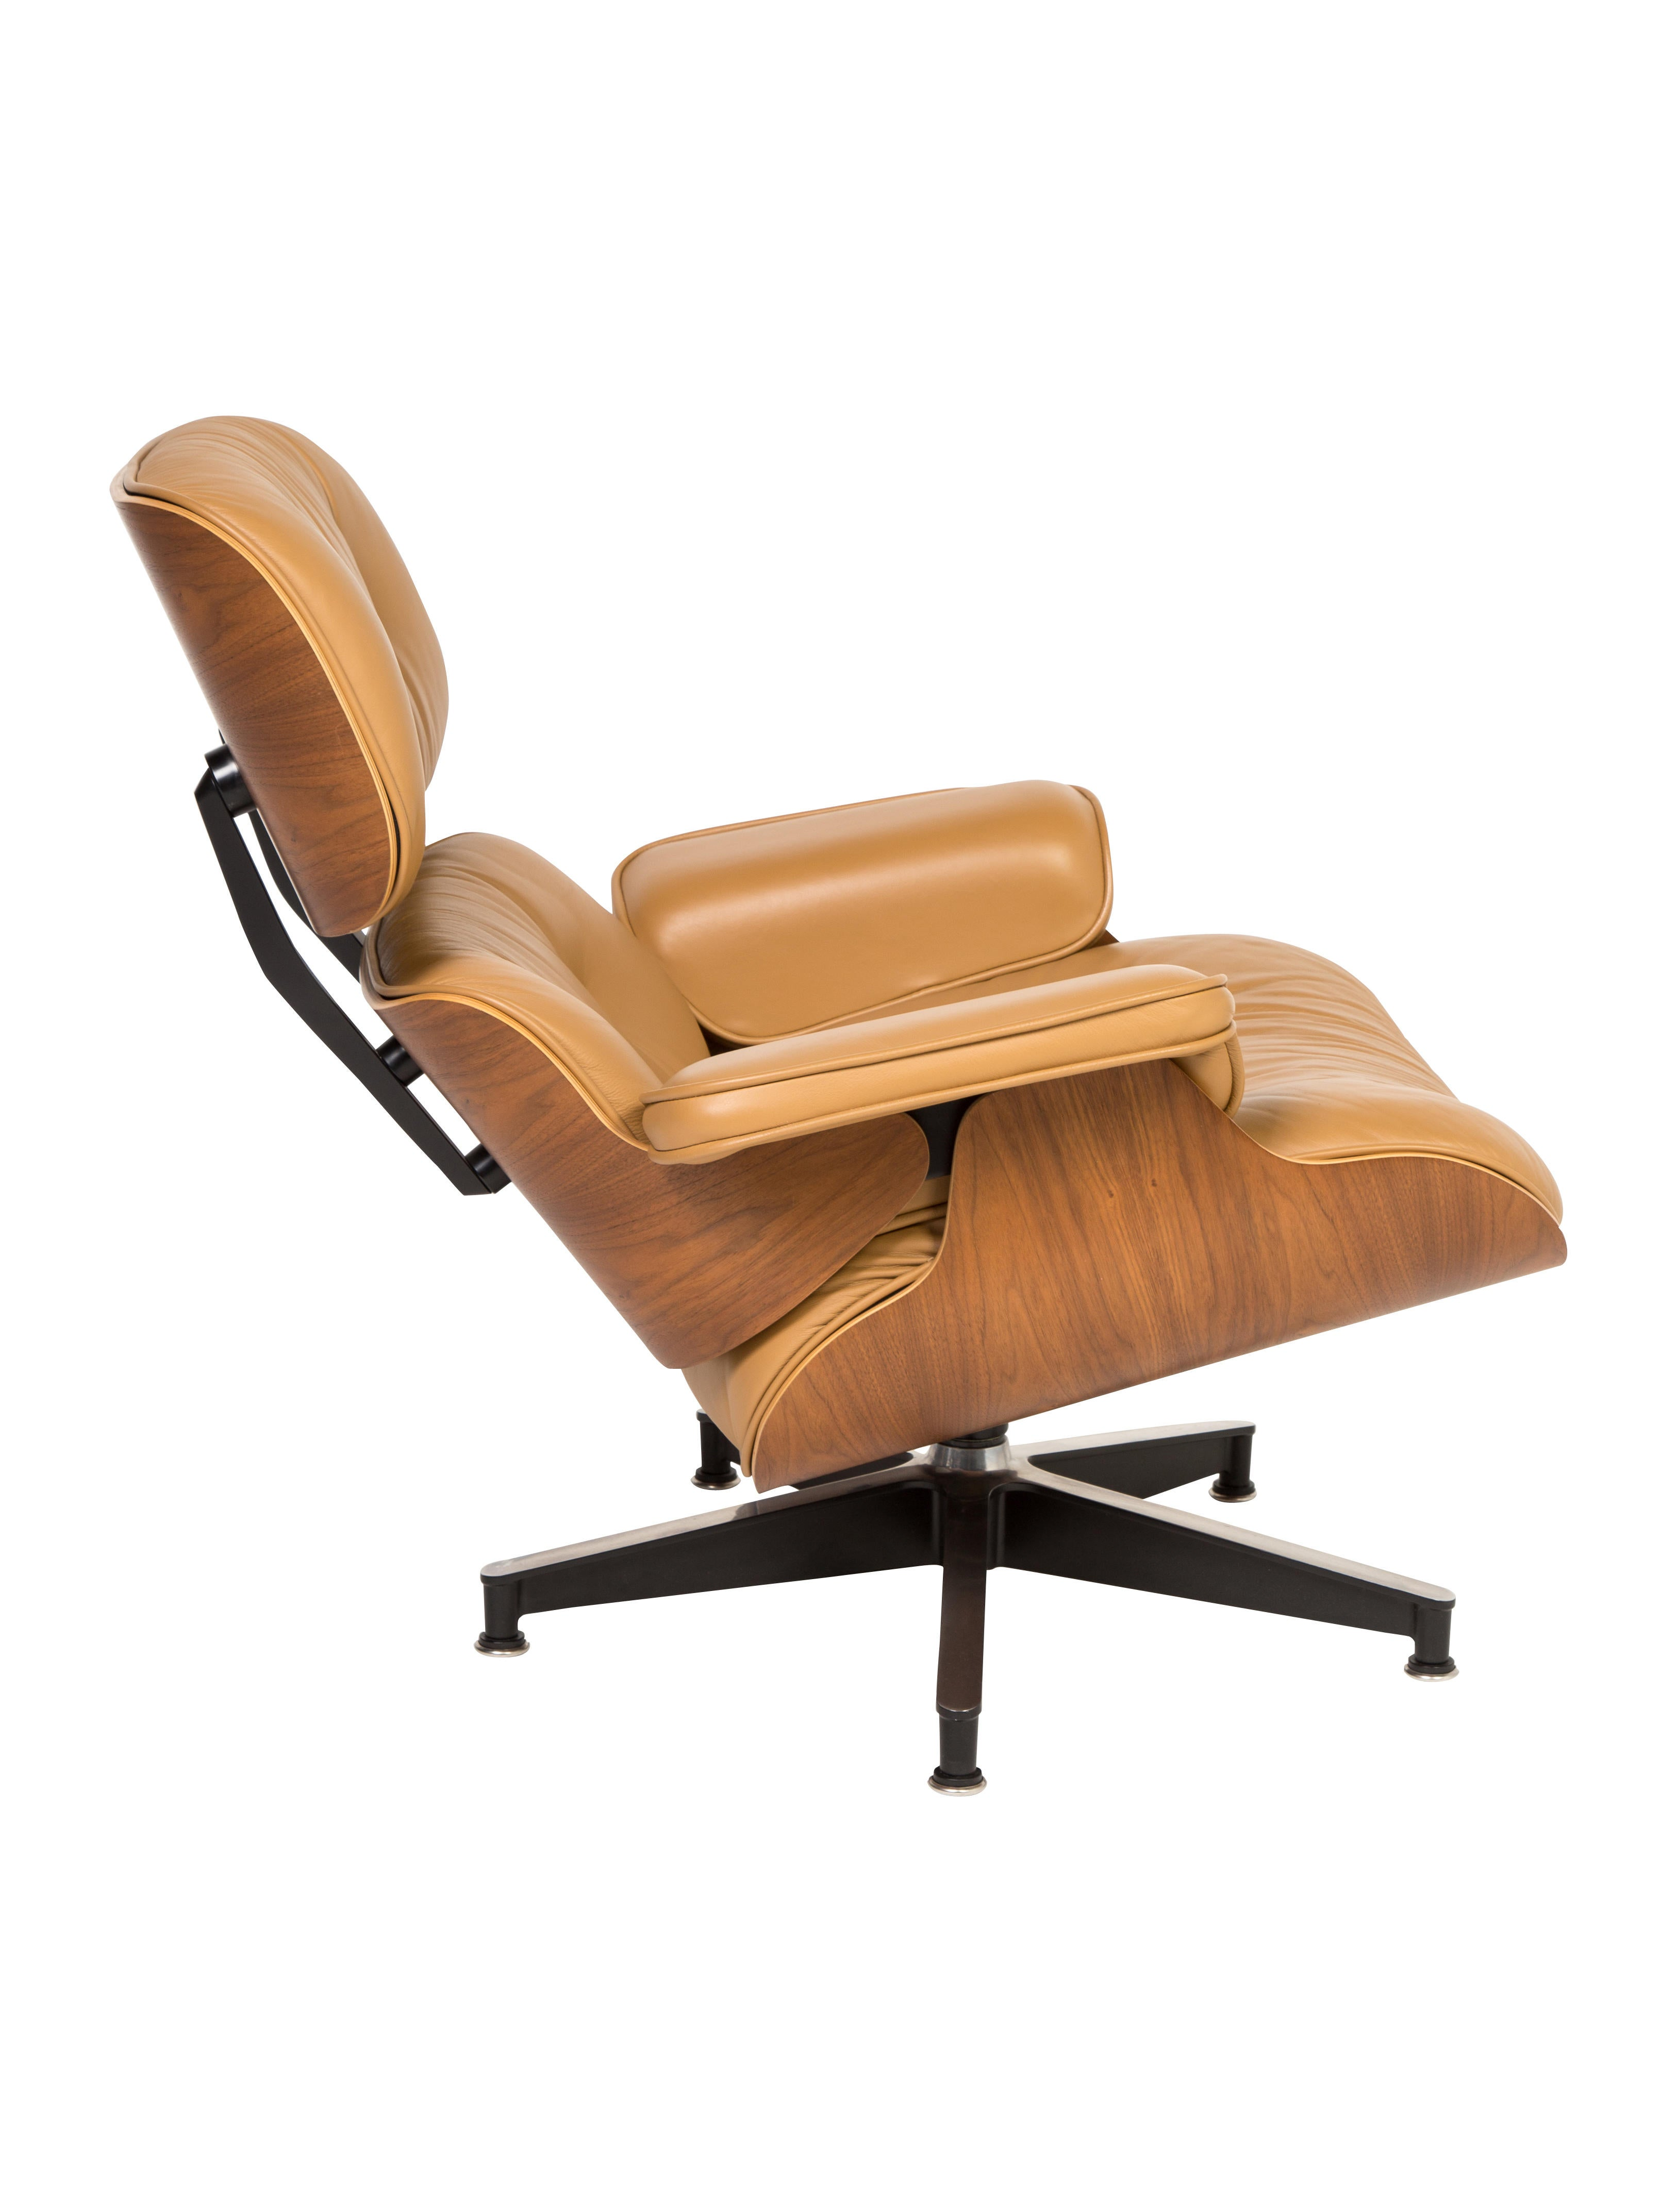 Herman miller eames lounge chair furniture hrmil20146 for Eames lounge sessel nachbau